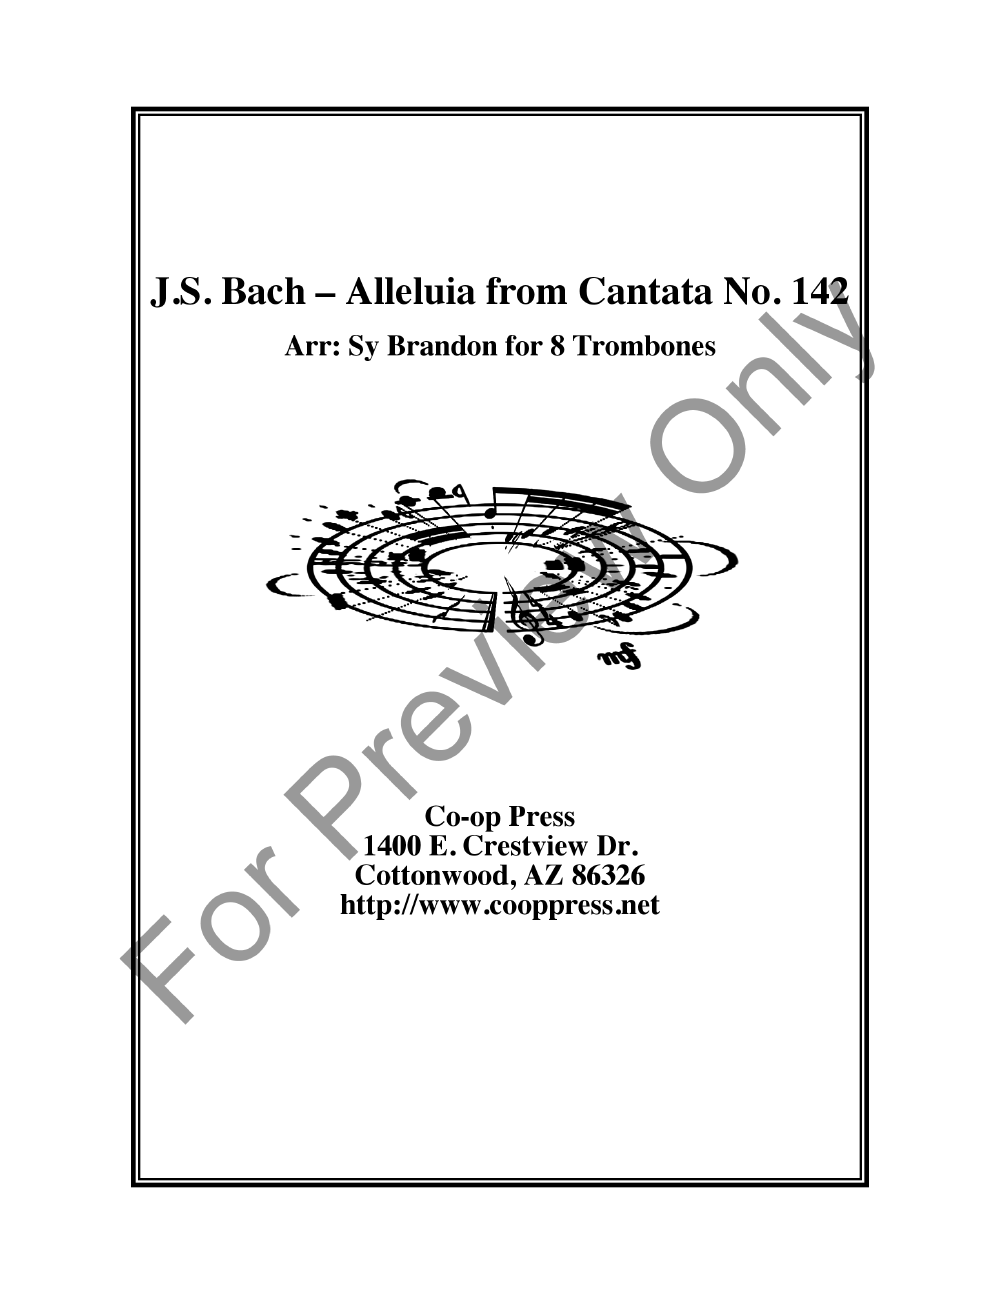 Alleluia from Cantata 142 Thumbnail